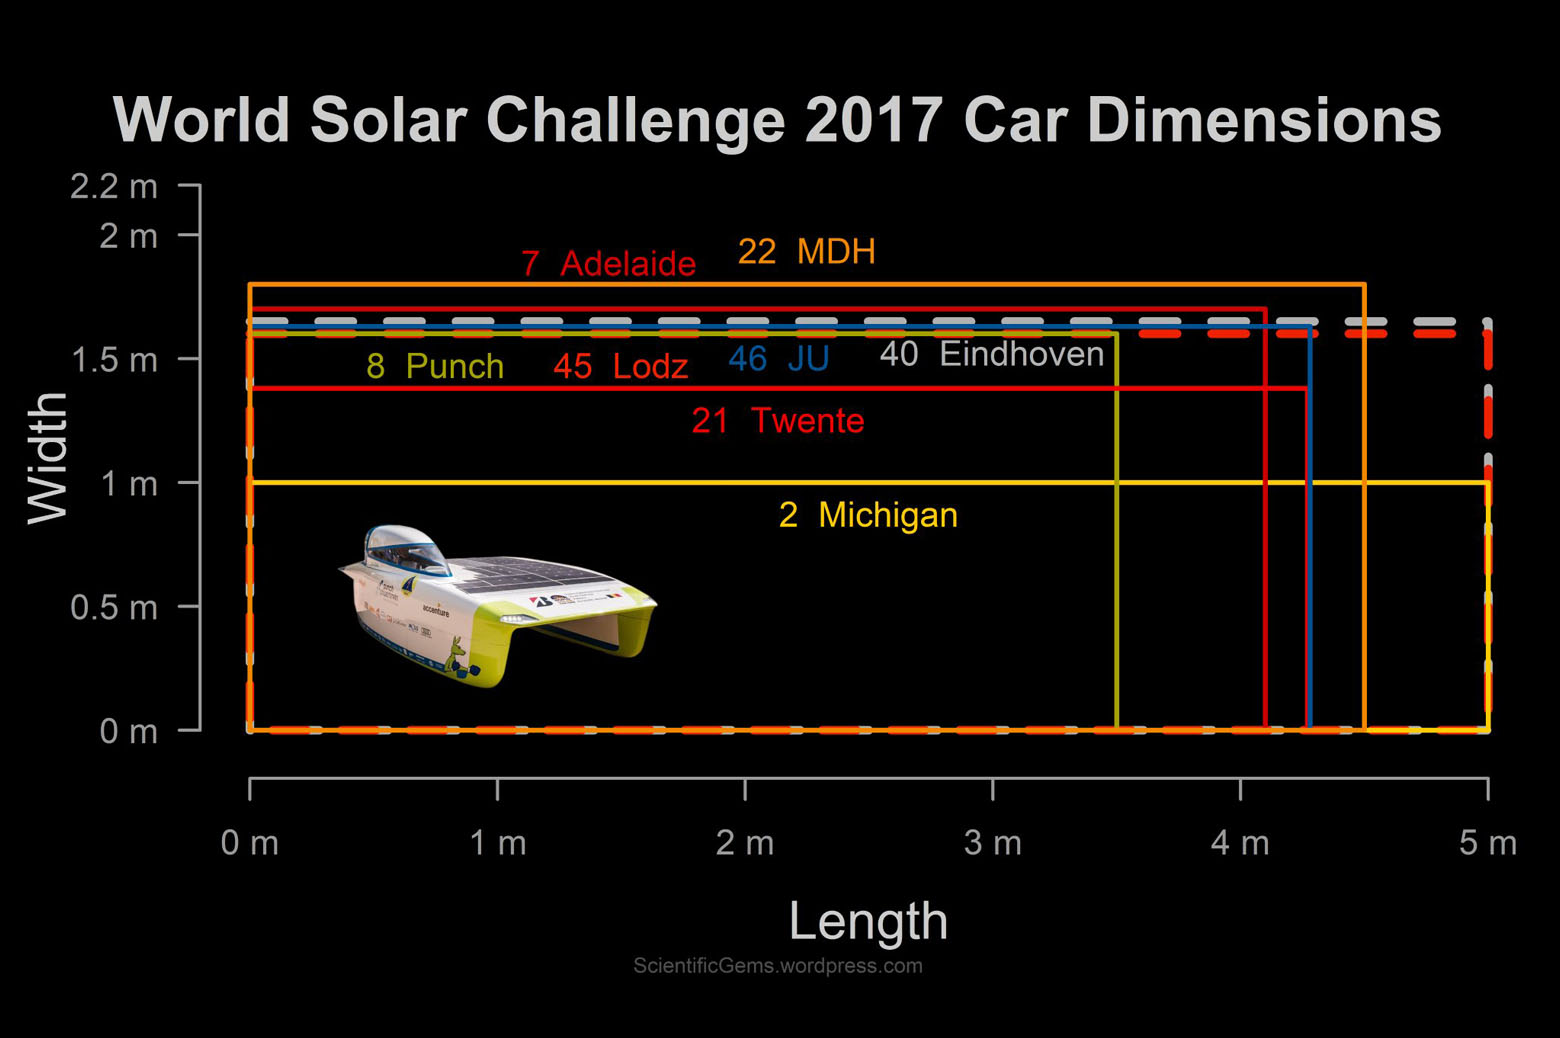 A table comparing the size of the various cars racing the 2017 World Solar Challenge. Michigan's is the longest.